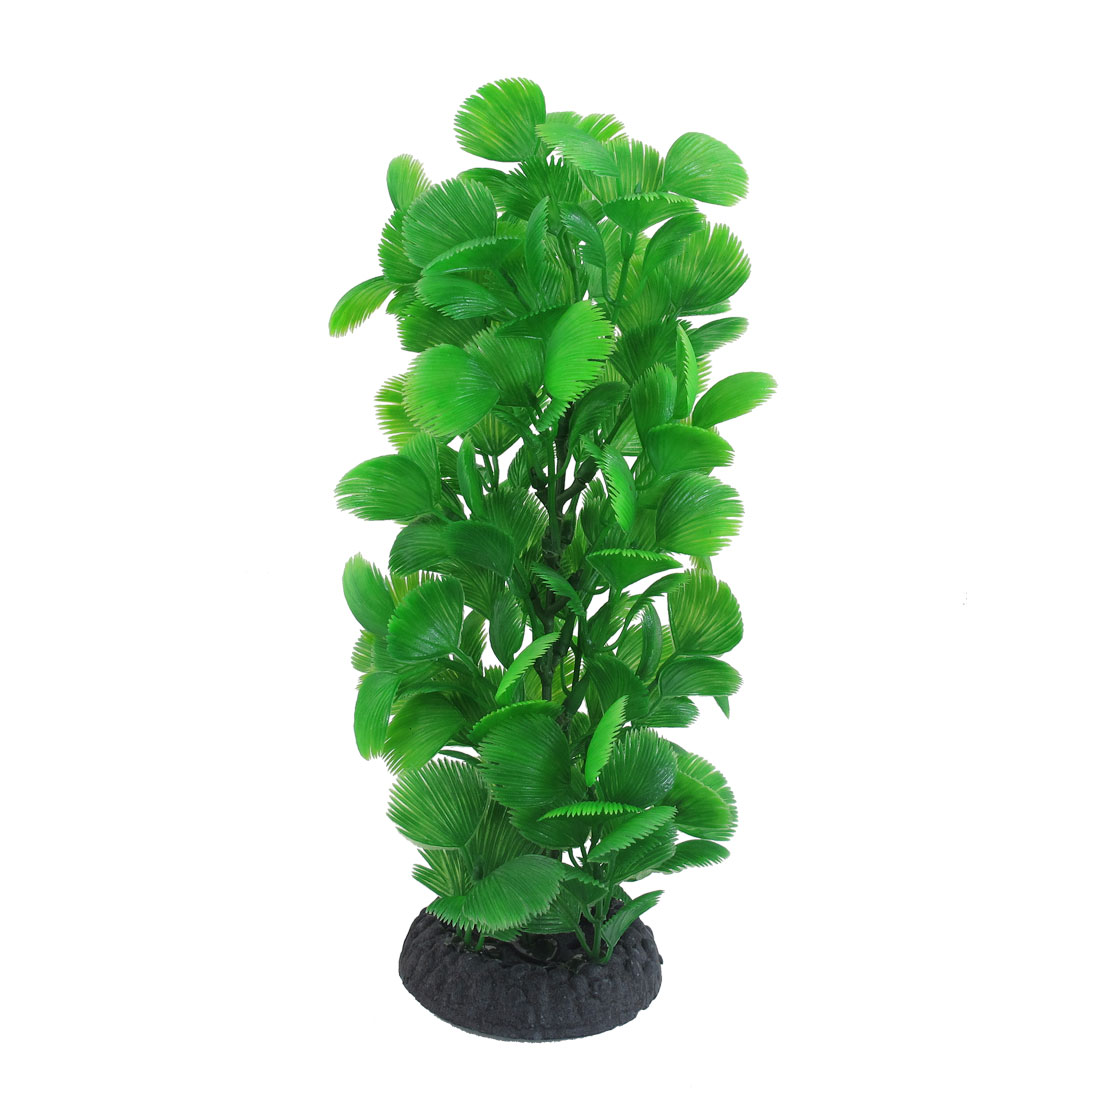 Underwater-Green-Plastic-Plants-Fish-Tank-Aquarium-Ornament-9-3